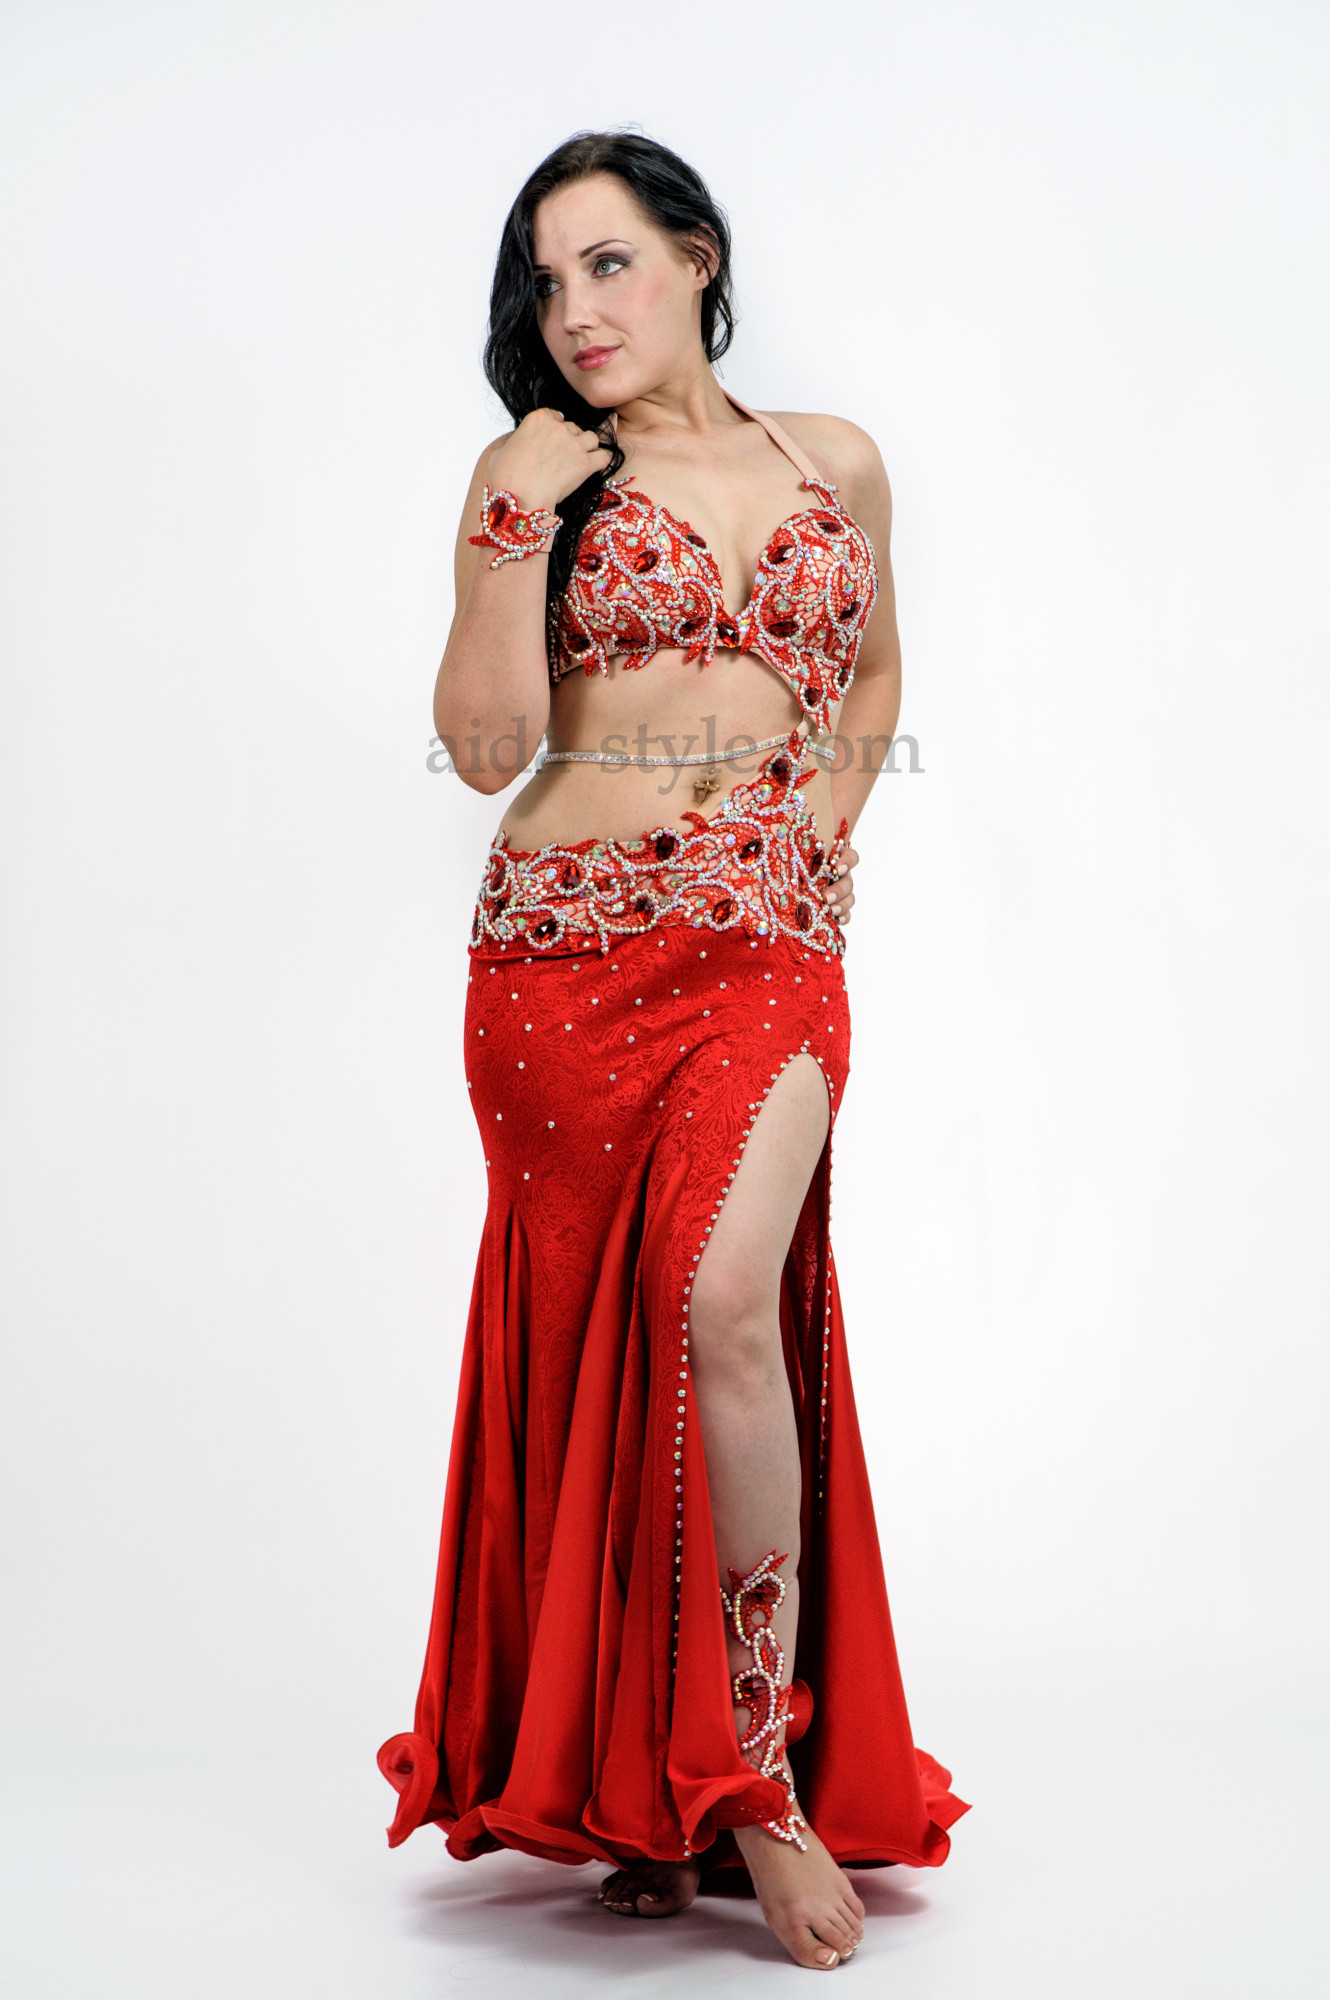 Red professional belly dance dress decorated with stones. The skirt has a cut on the left side